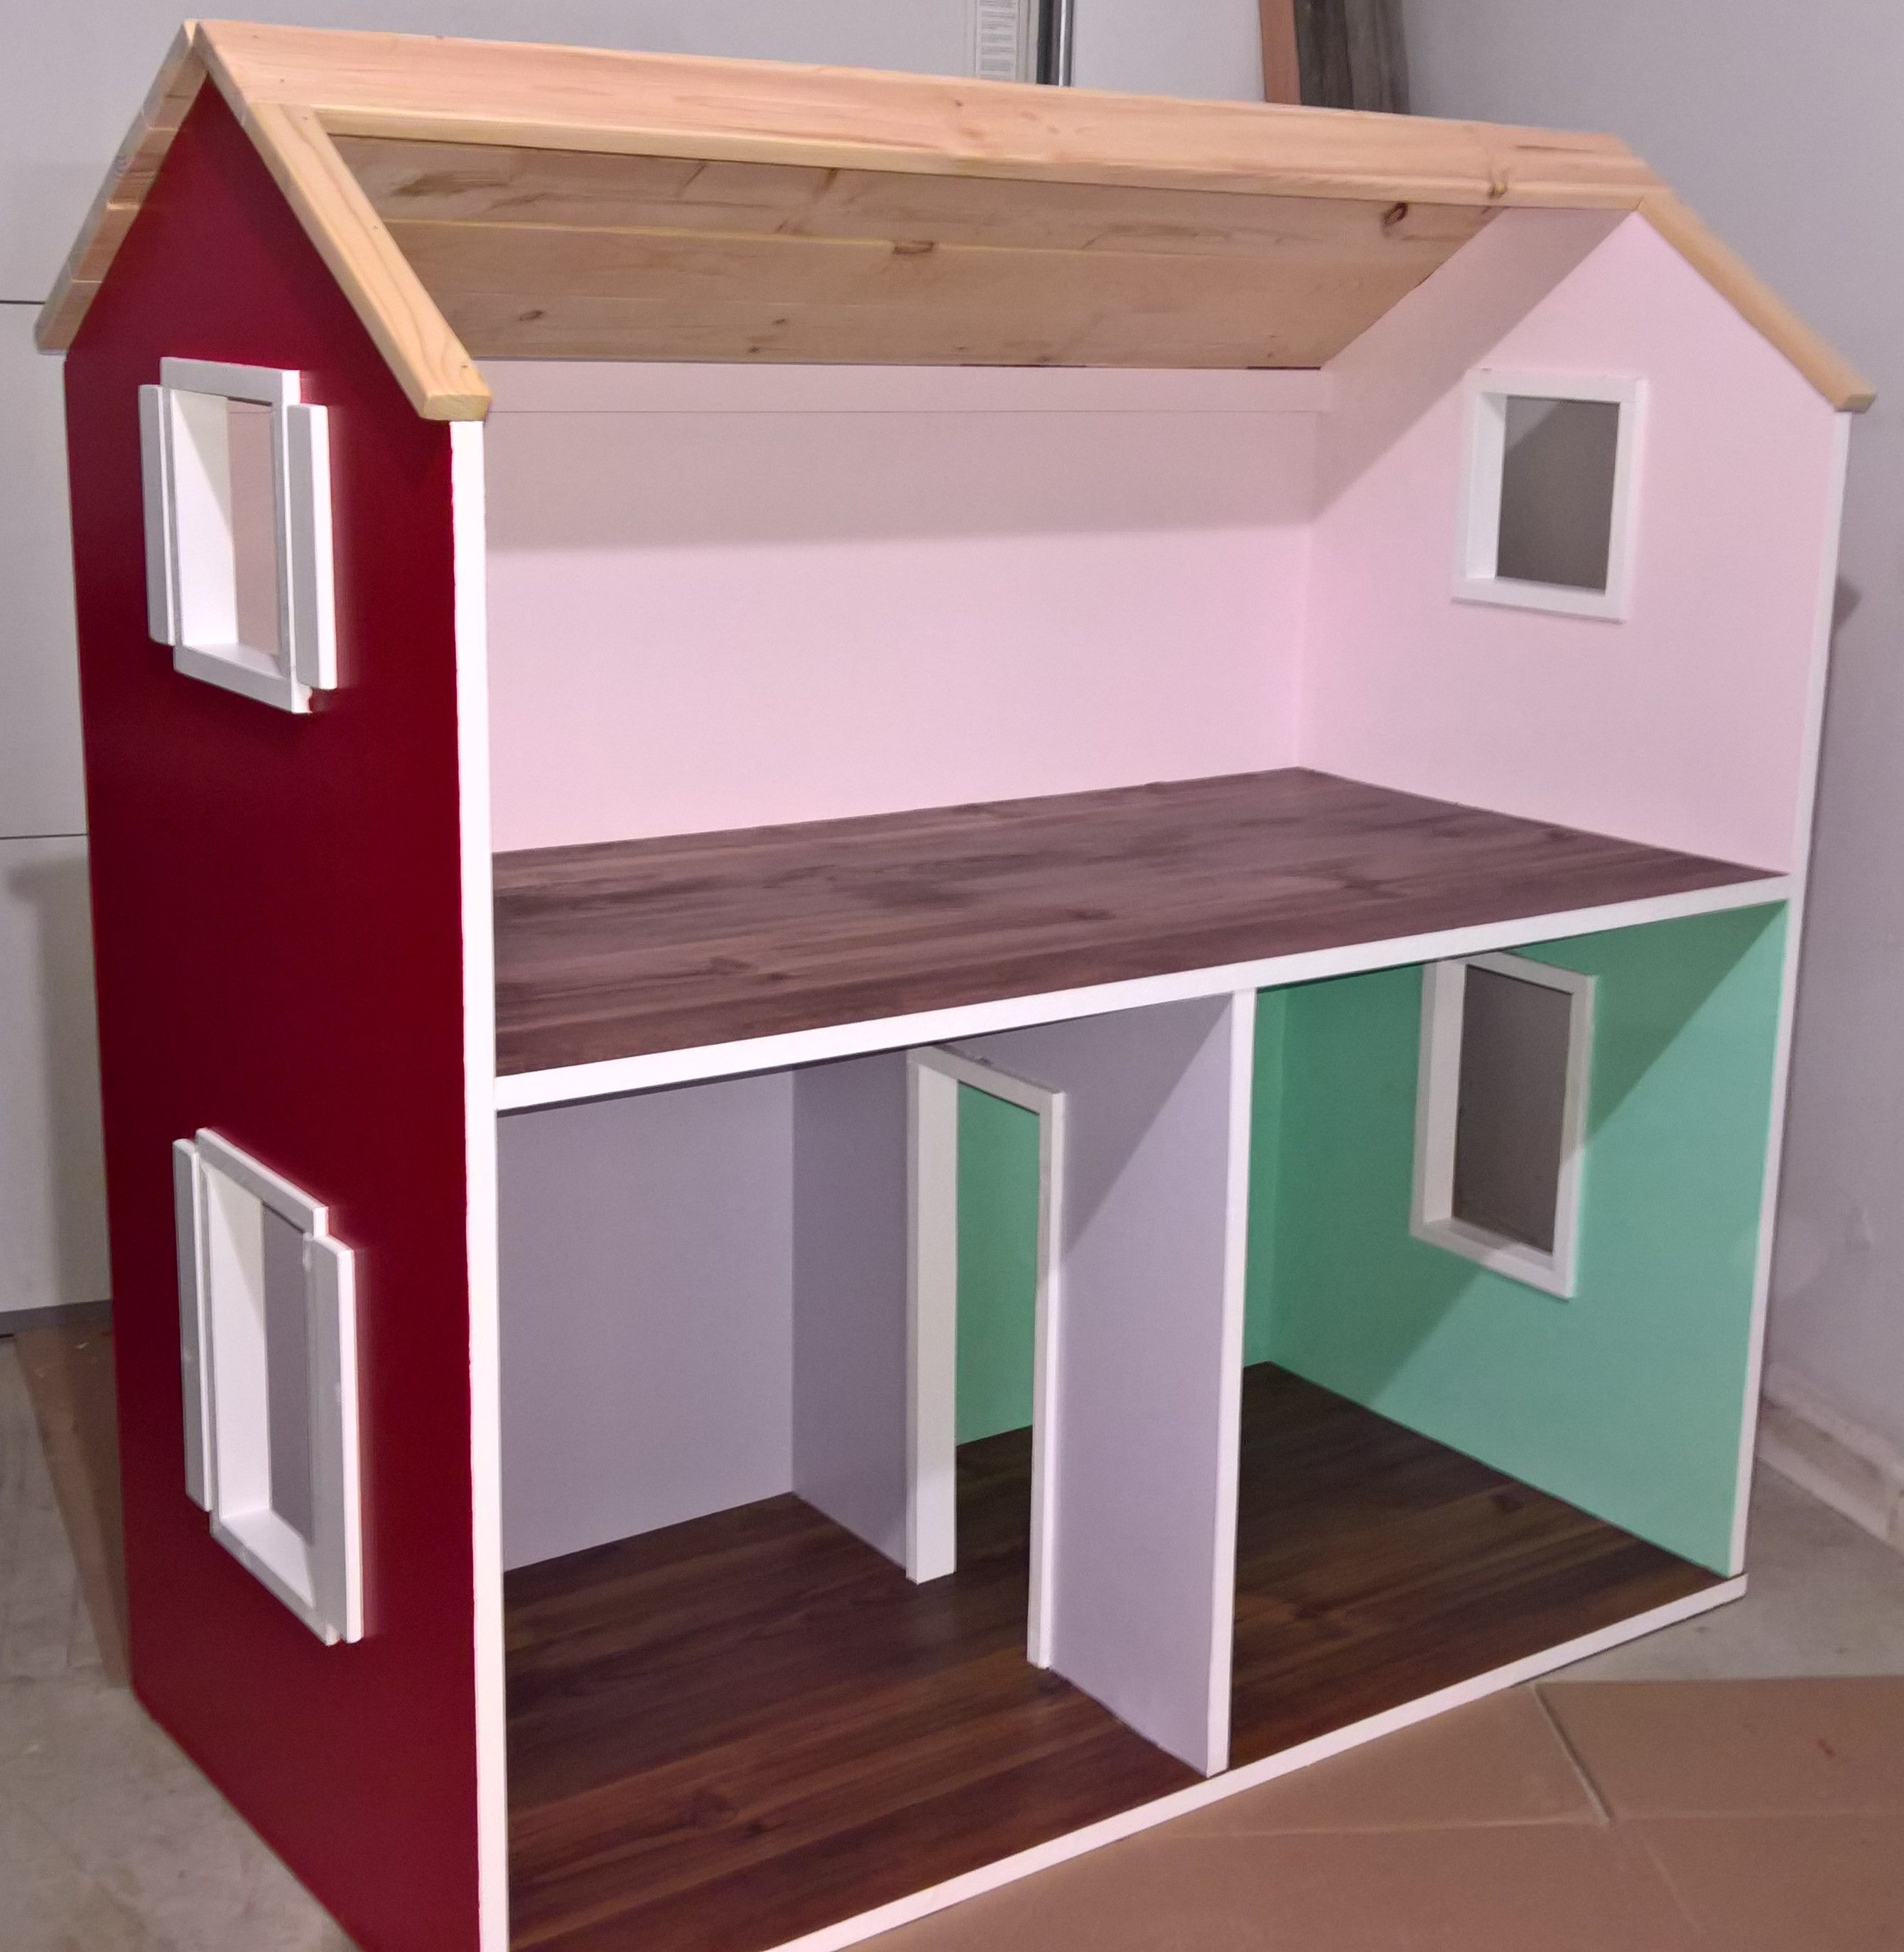 Ana White 2 Story American Girl Dollhouse Diy Projects Doll